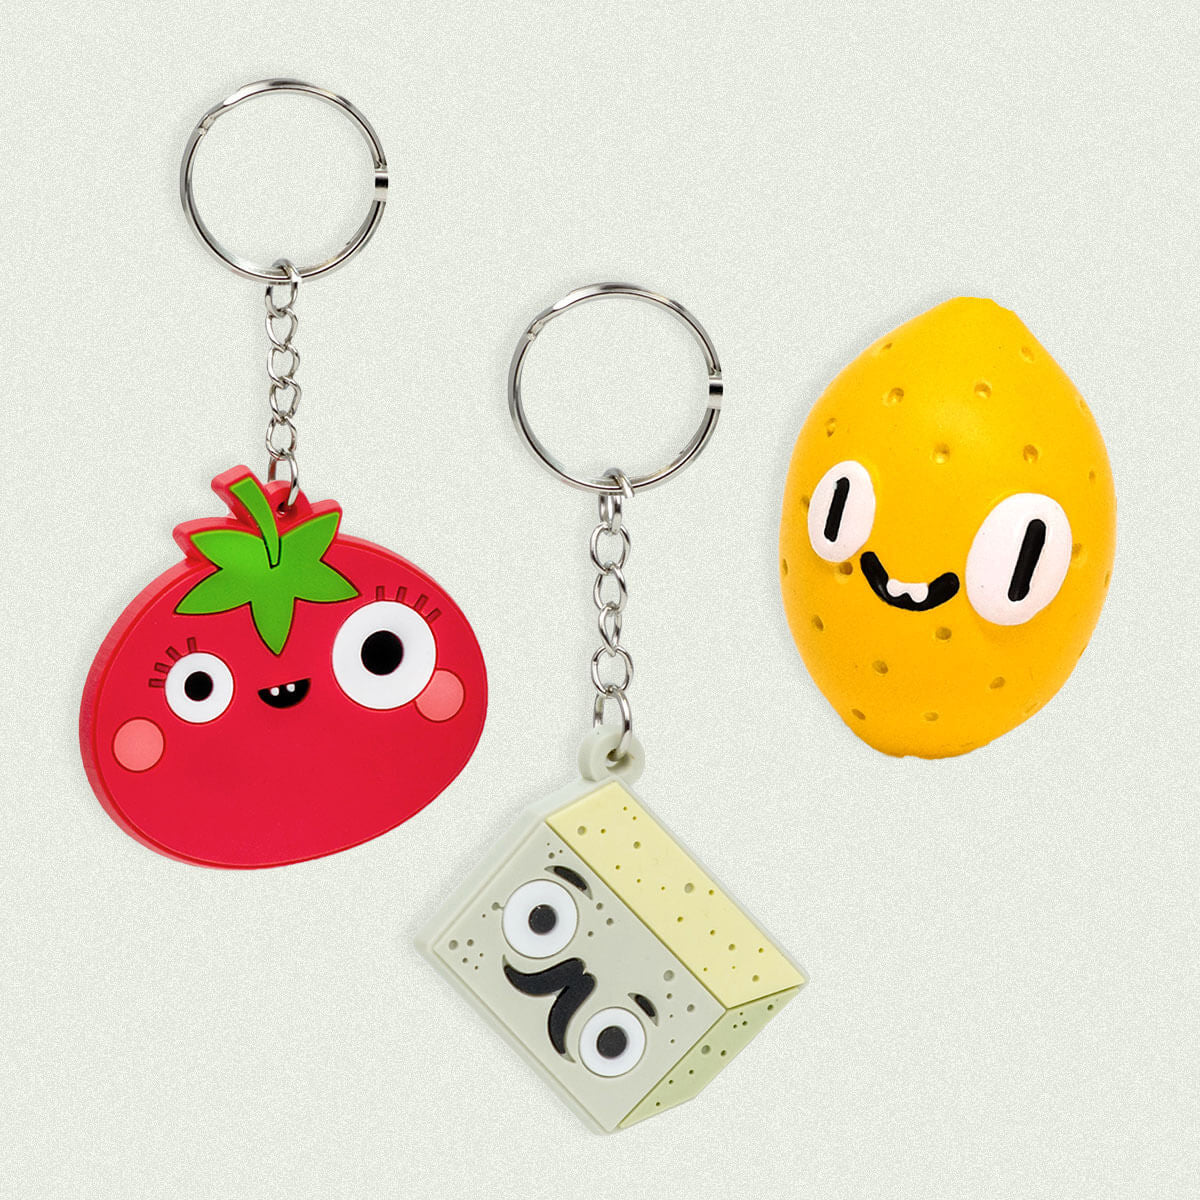 Vegan Keychains & Charms